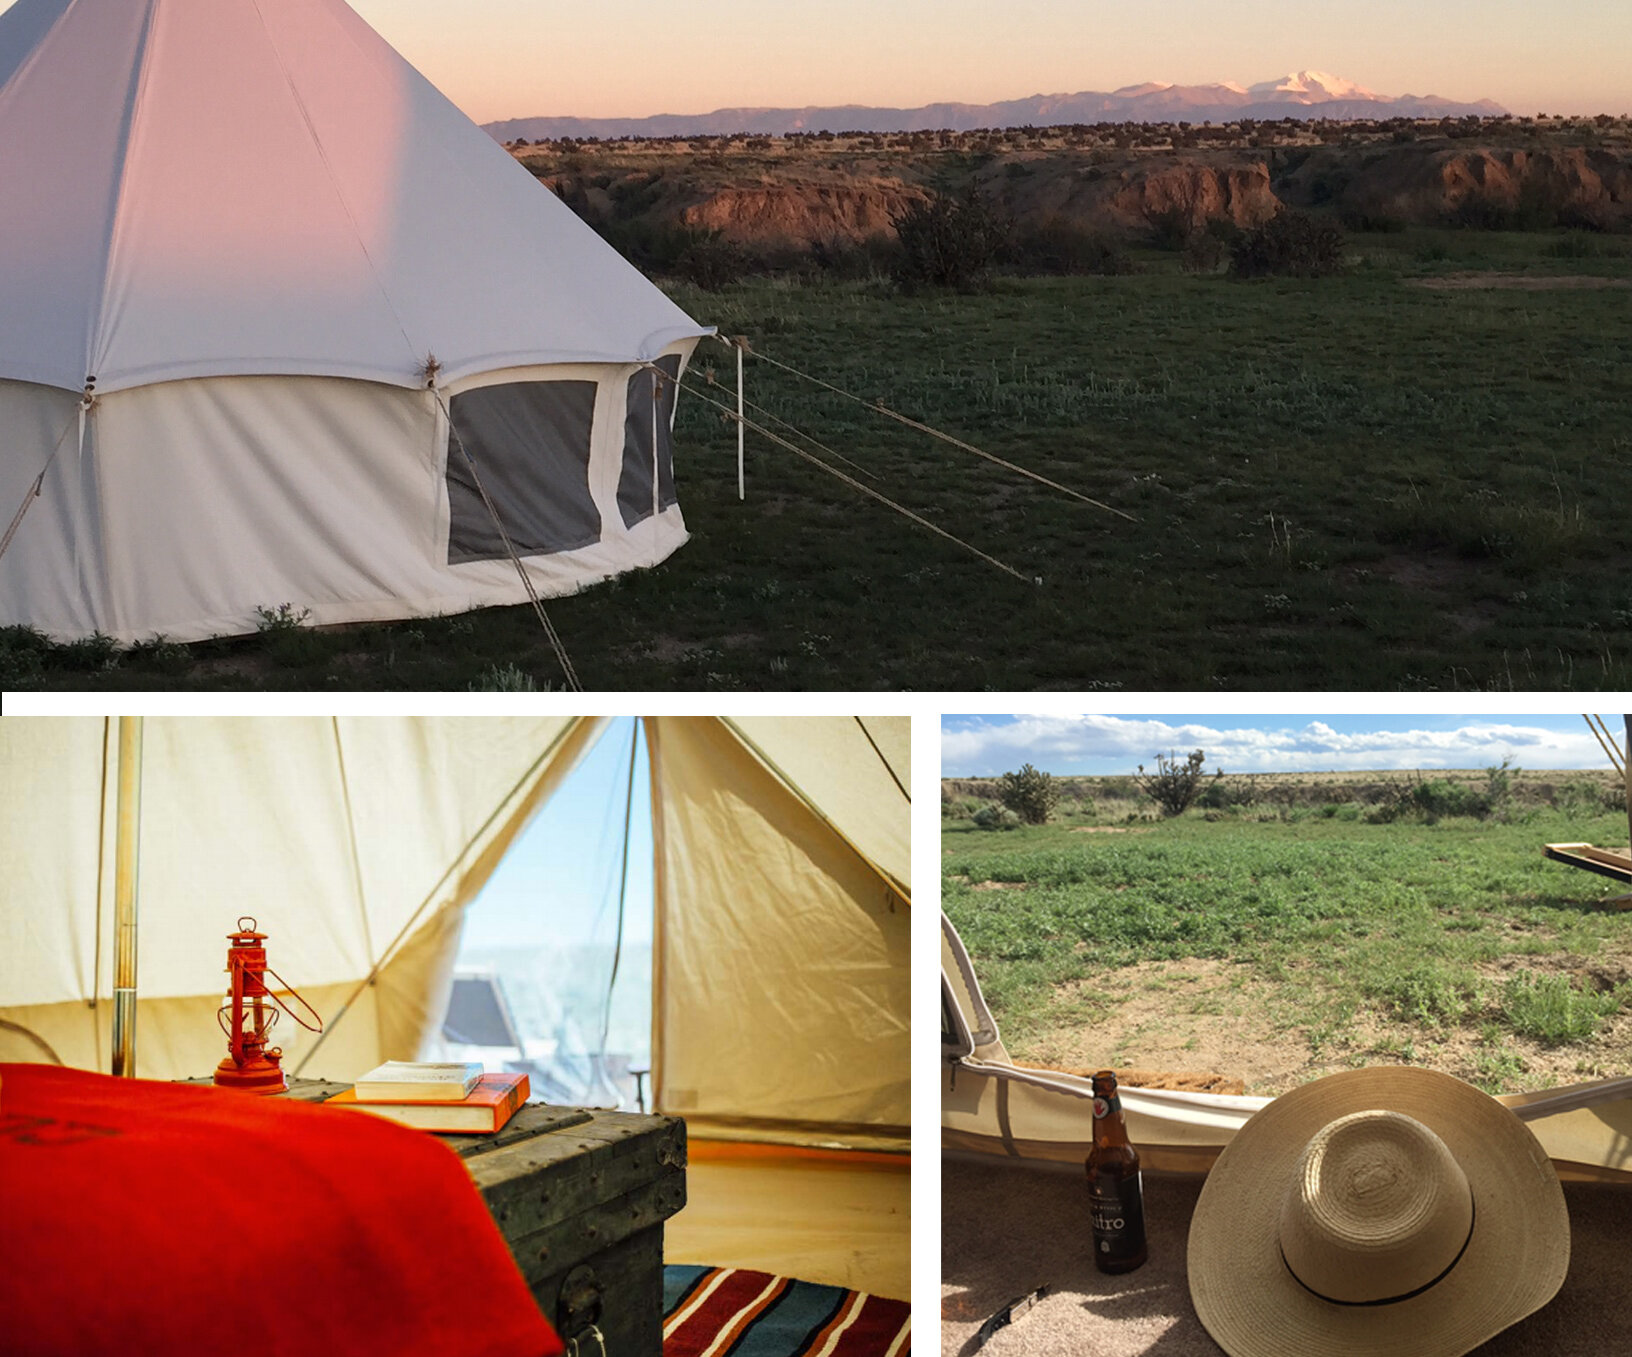 After a full day of learning and painting, enjoy an outdoor hot shower and relax in camp before supper is called. There is no better way to connect with your surroundings than to sleep under the stars and retire to your comfortable Denver Tent Company tent, tastefully furnished by Filson.